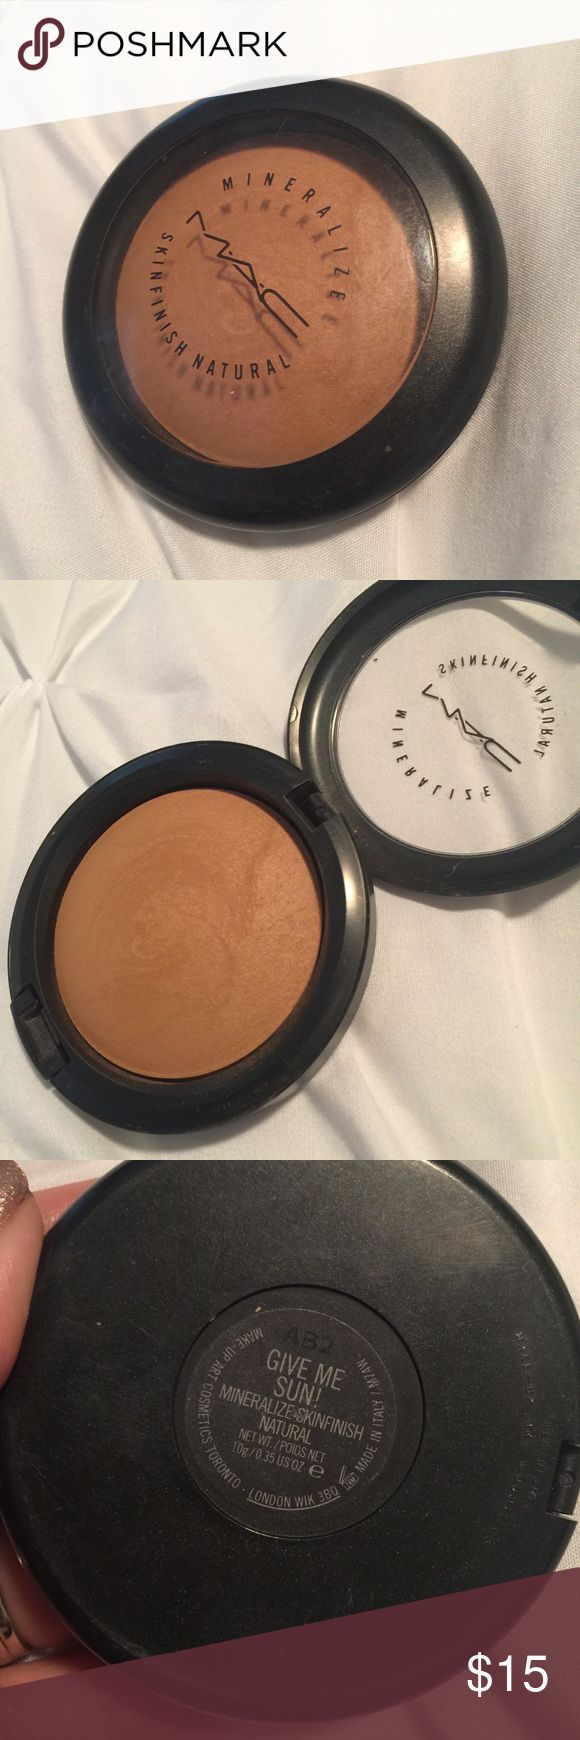 MAC Give me sun MAC Give me sun bronzer. Only swatched. MAC Cosmetics Makeup Bronzer